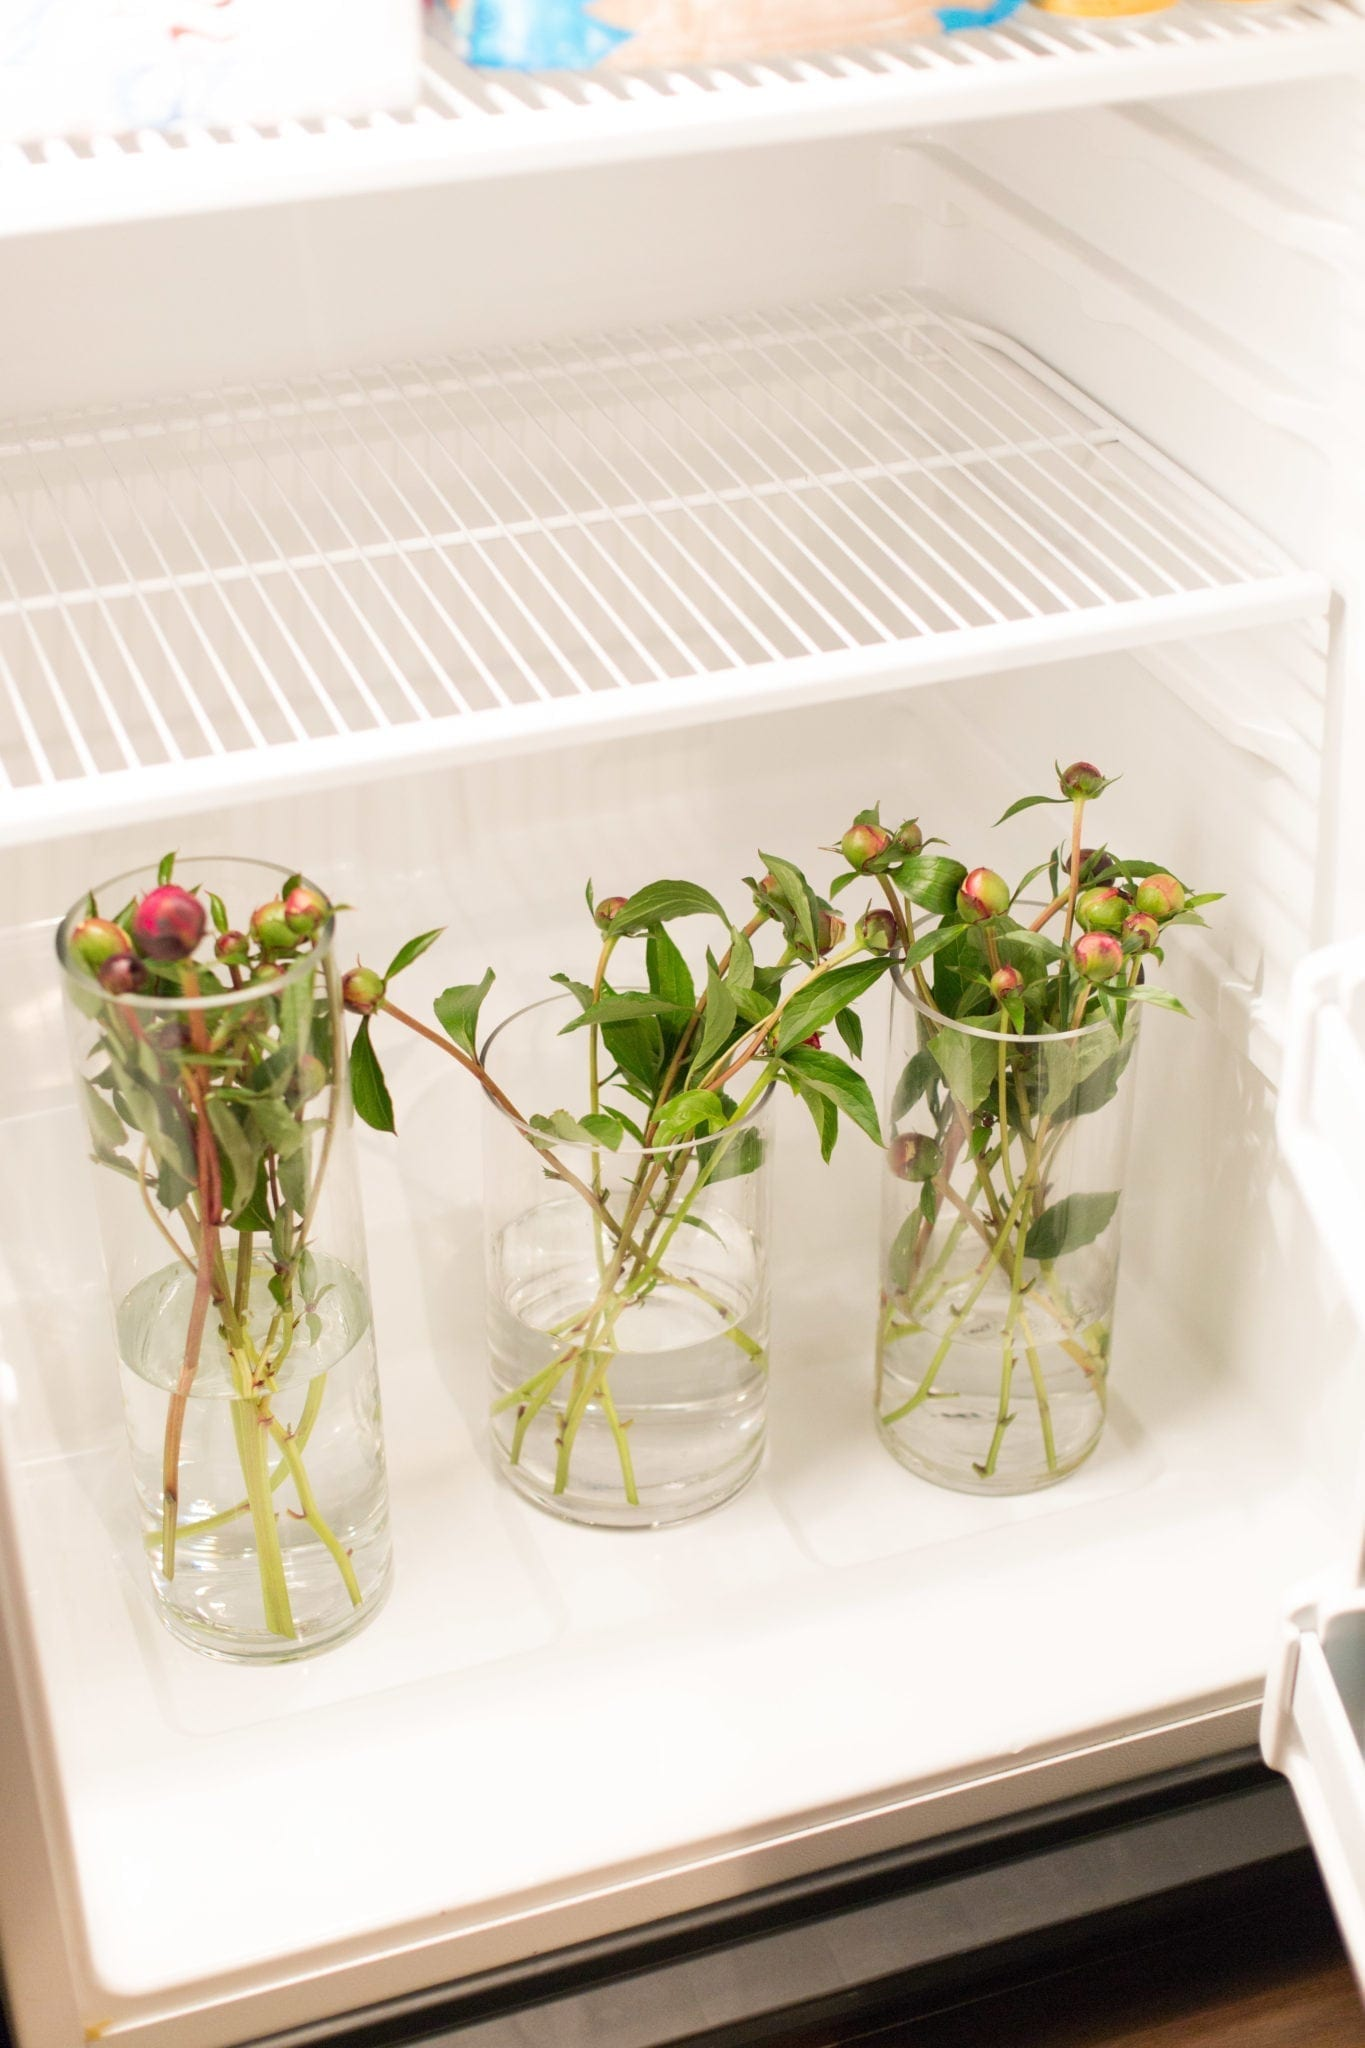 How to store peonies. Keeping peony blooms for flower arrangements.